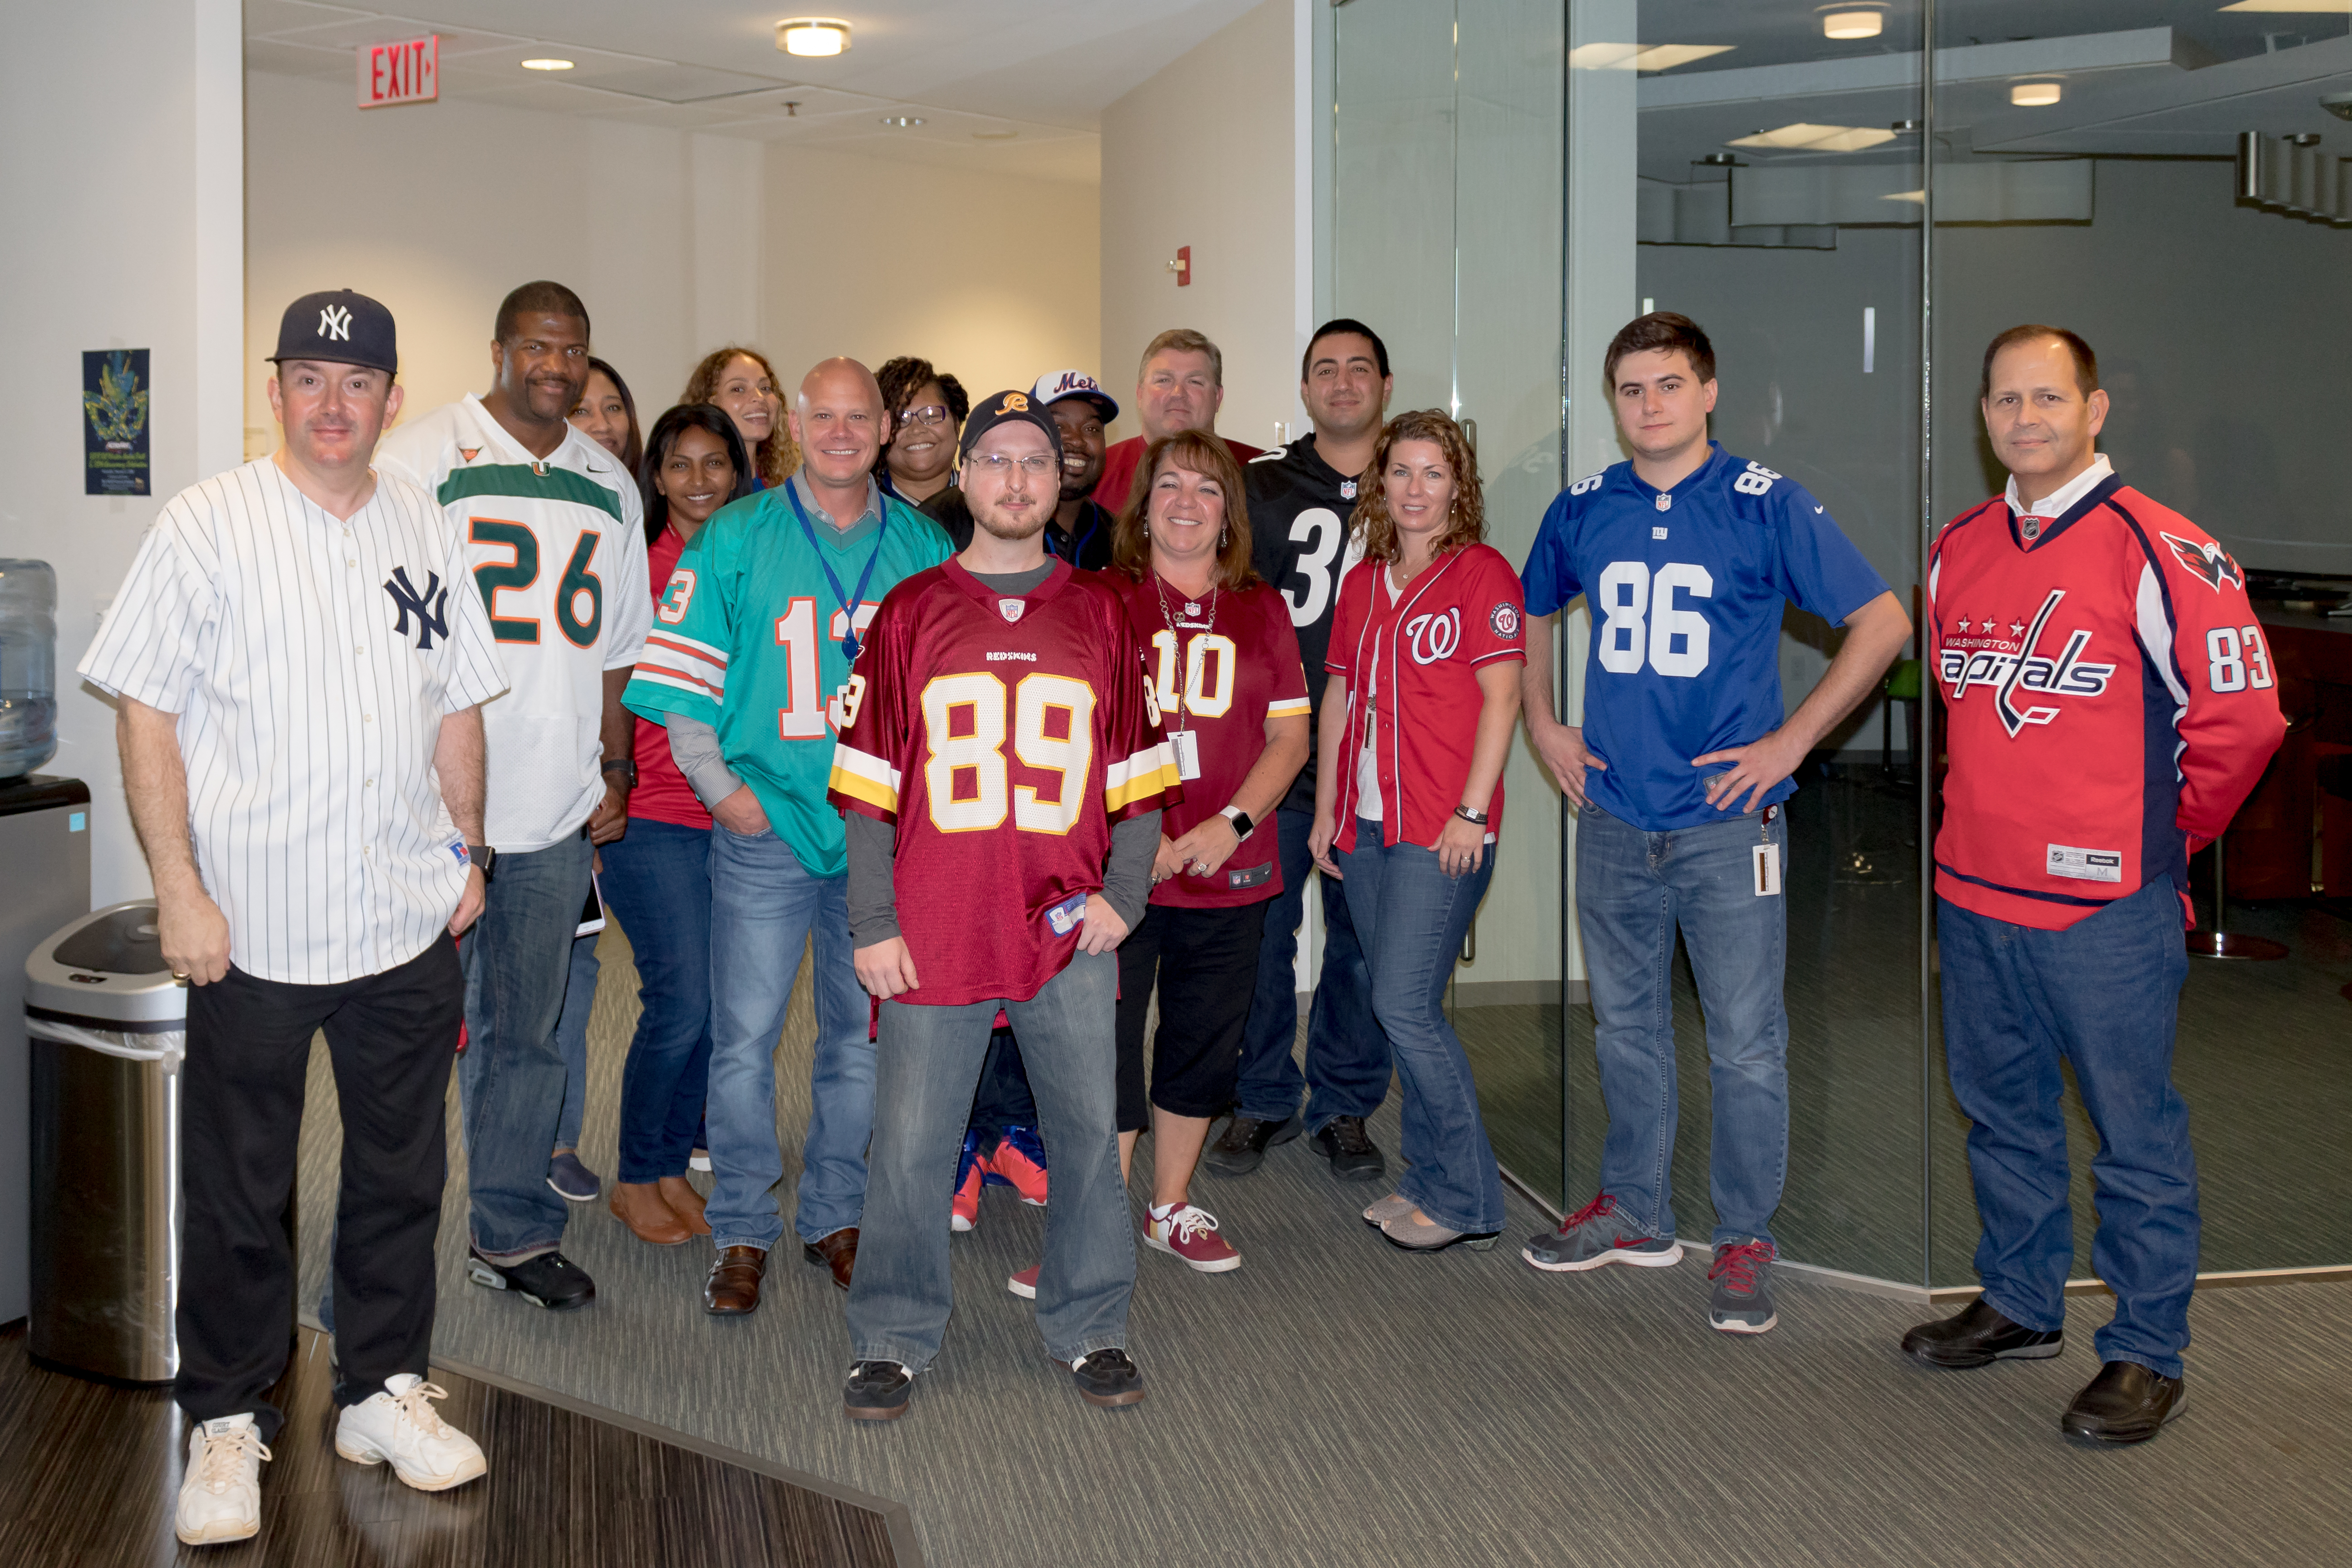 ActioNeters participating in Wear Your Favorite Team Jersey Day gather together despite wearing a variety of jerseys